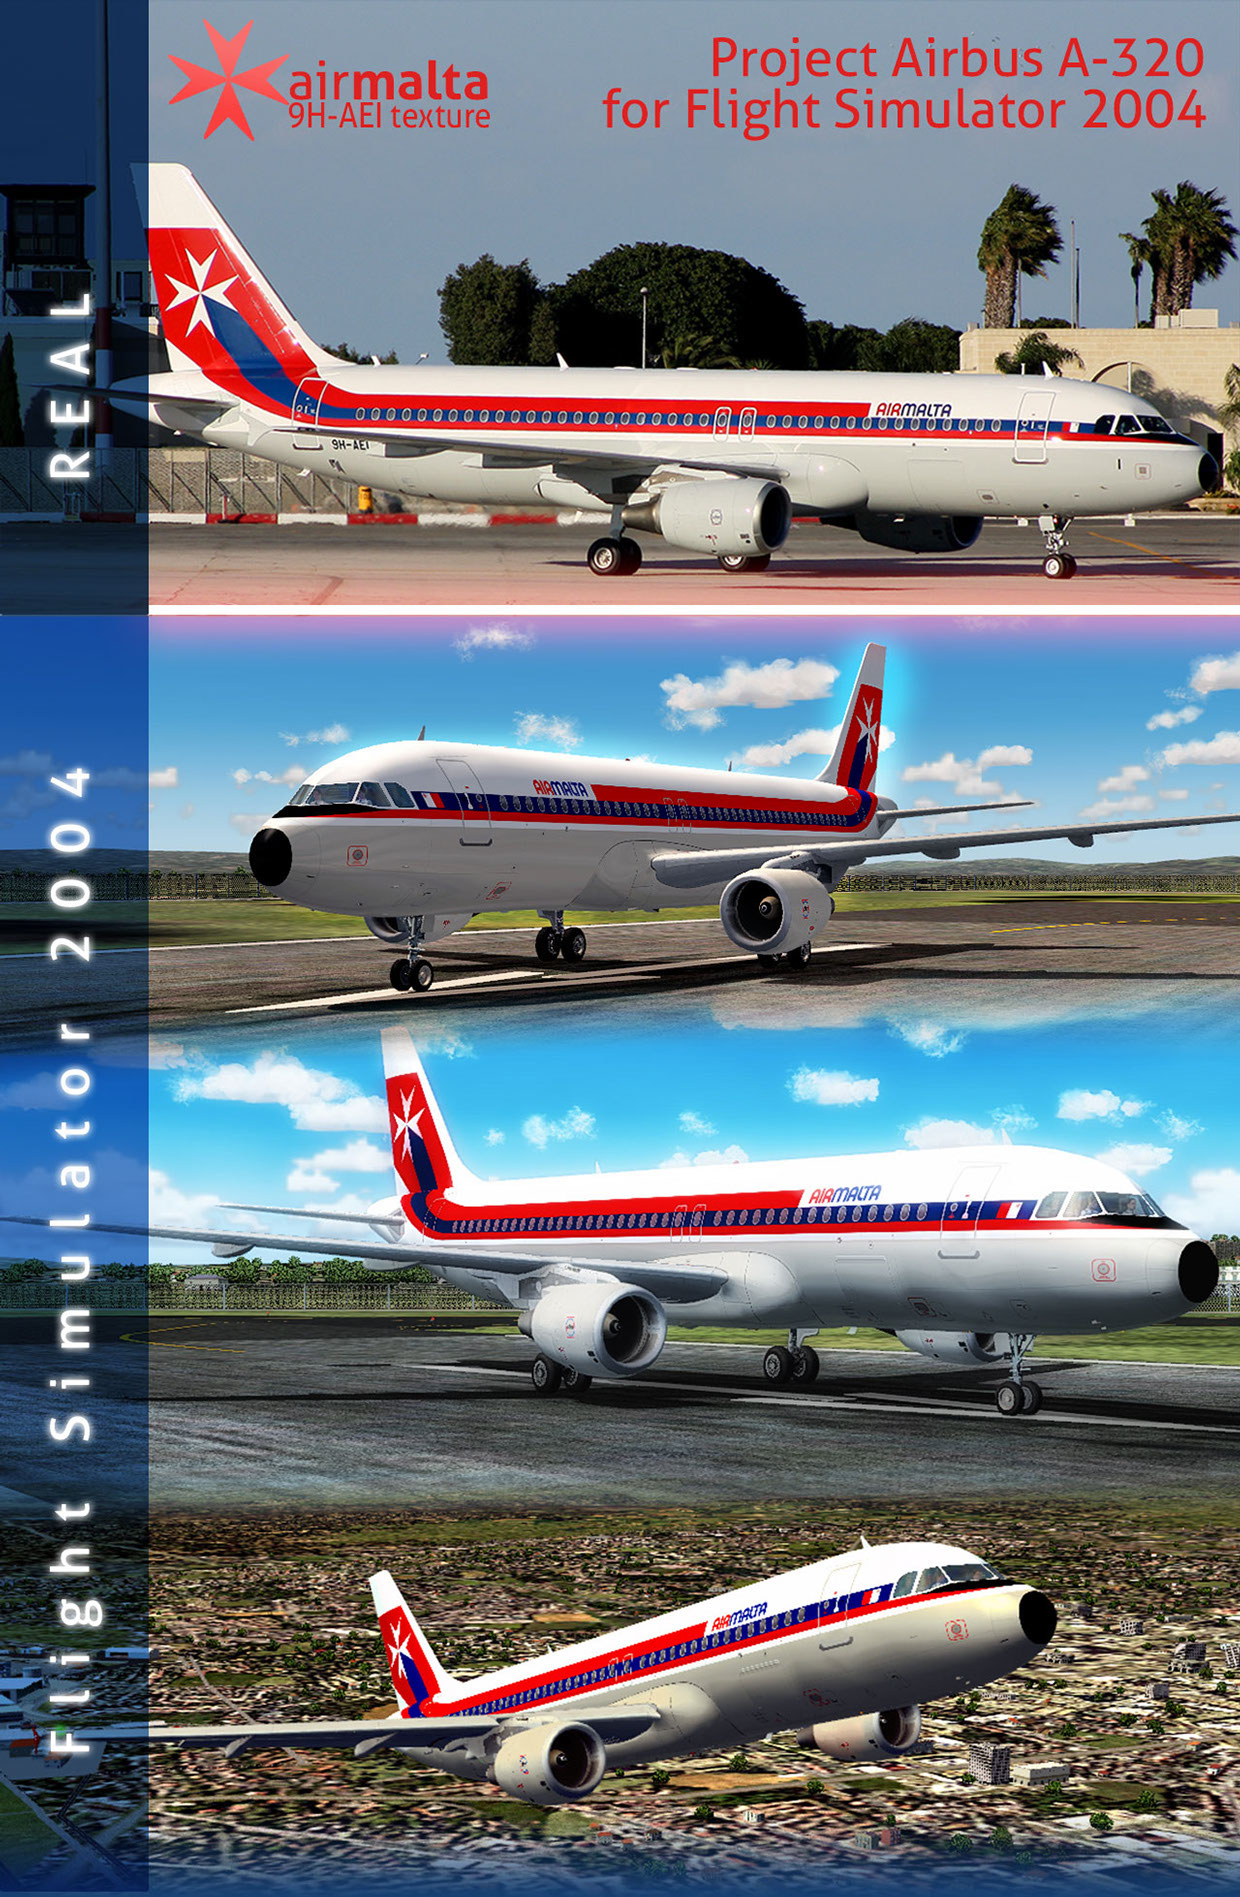 Air Malta 9H-AEI Retro Livery for FS2004